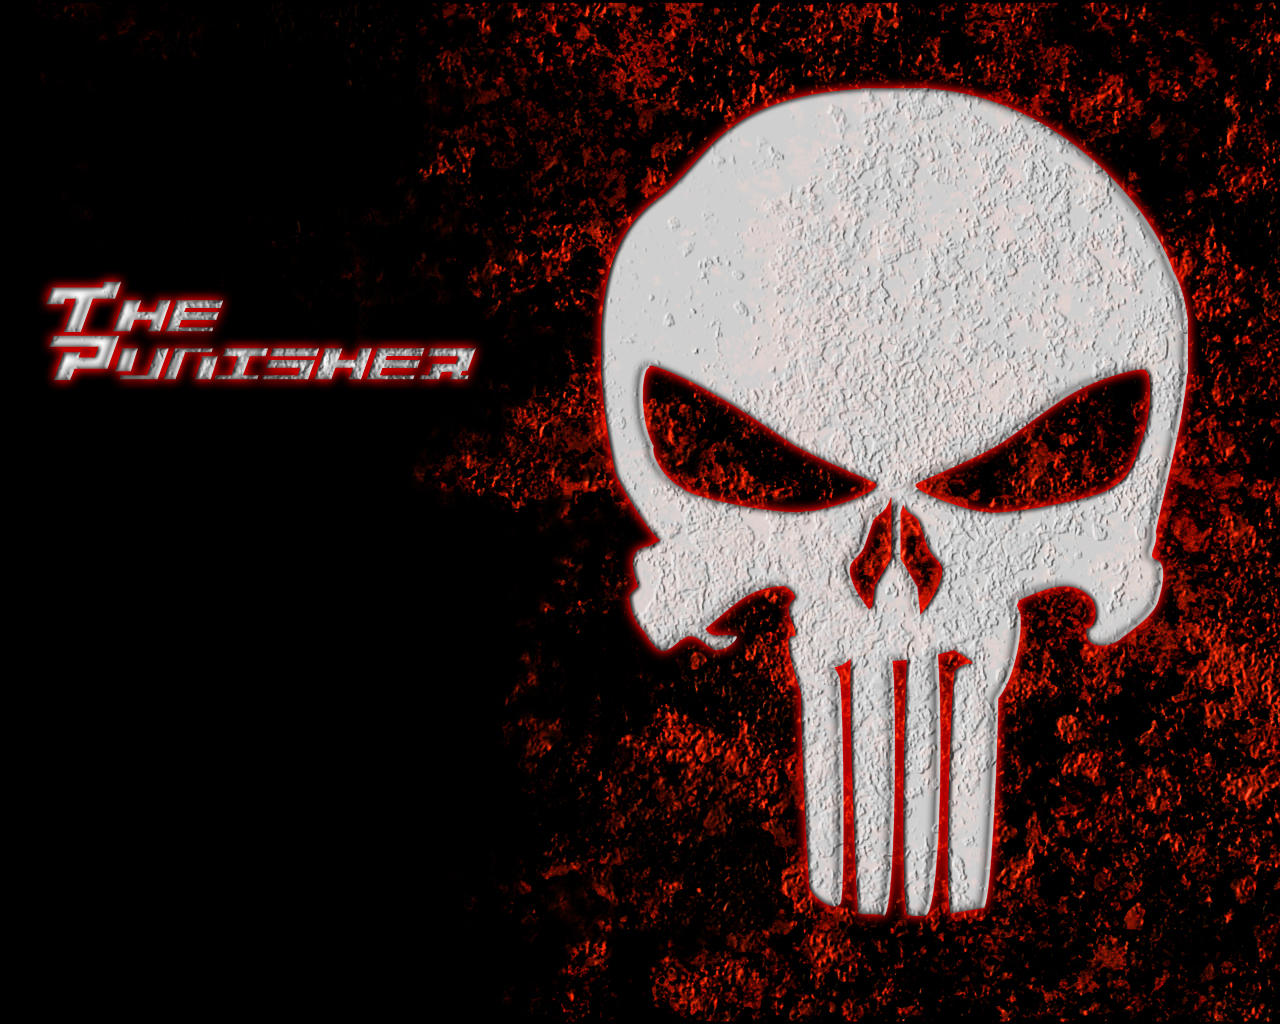 Wallpaper   The Punisher 2 By The System